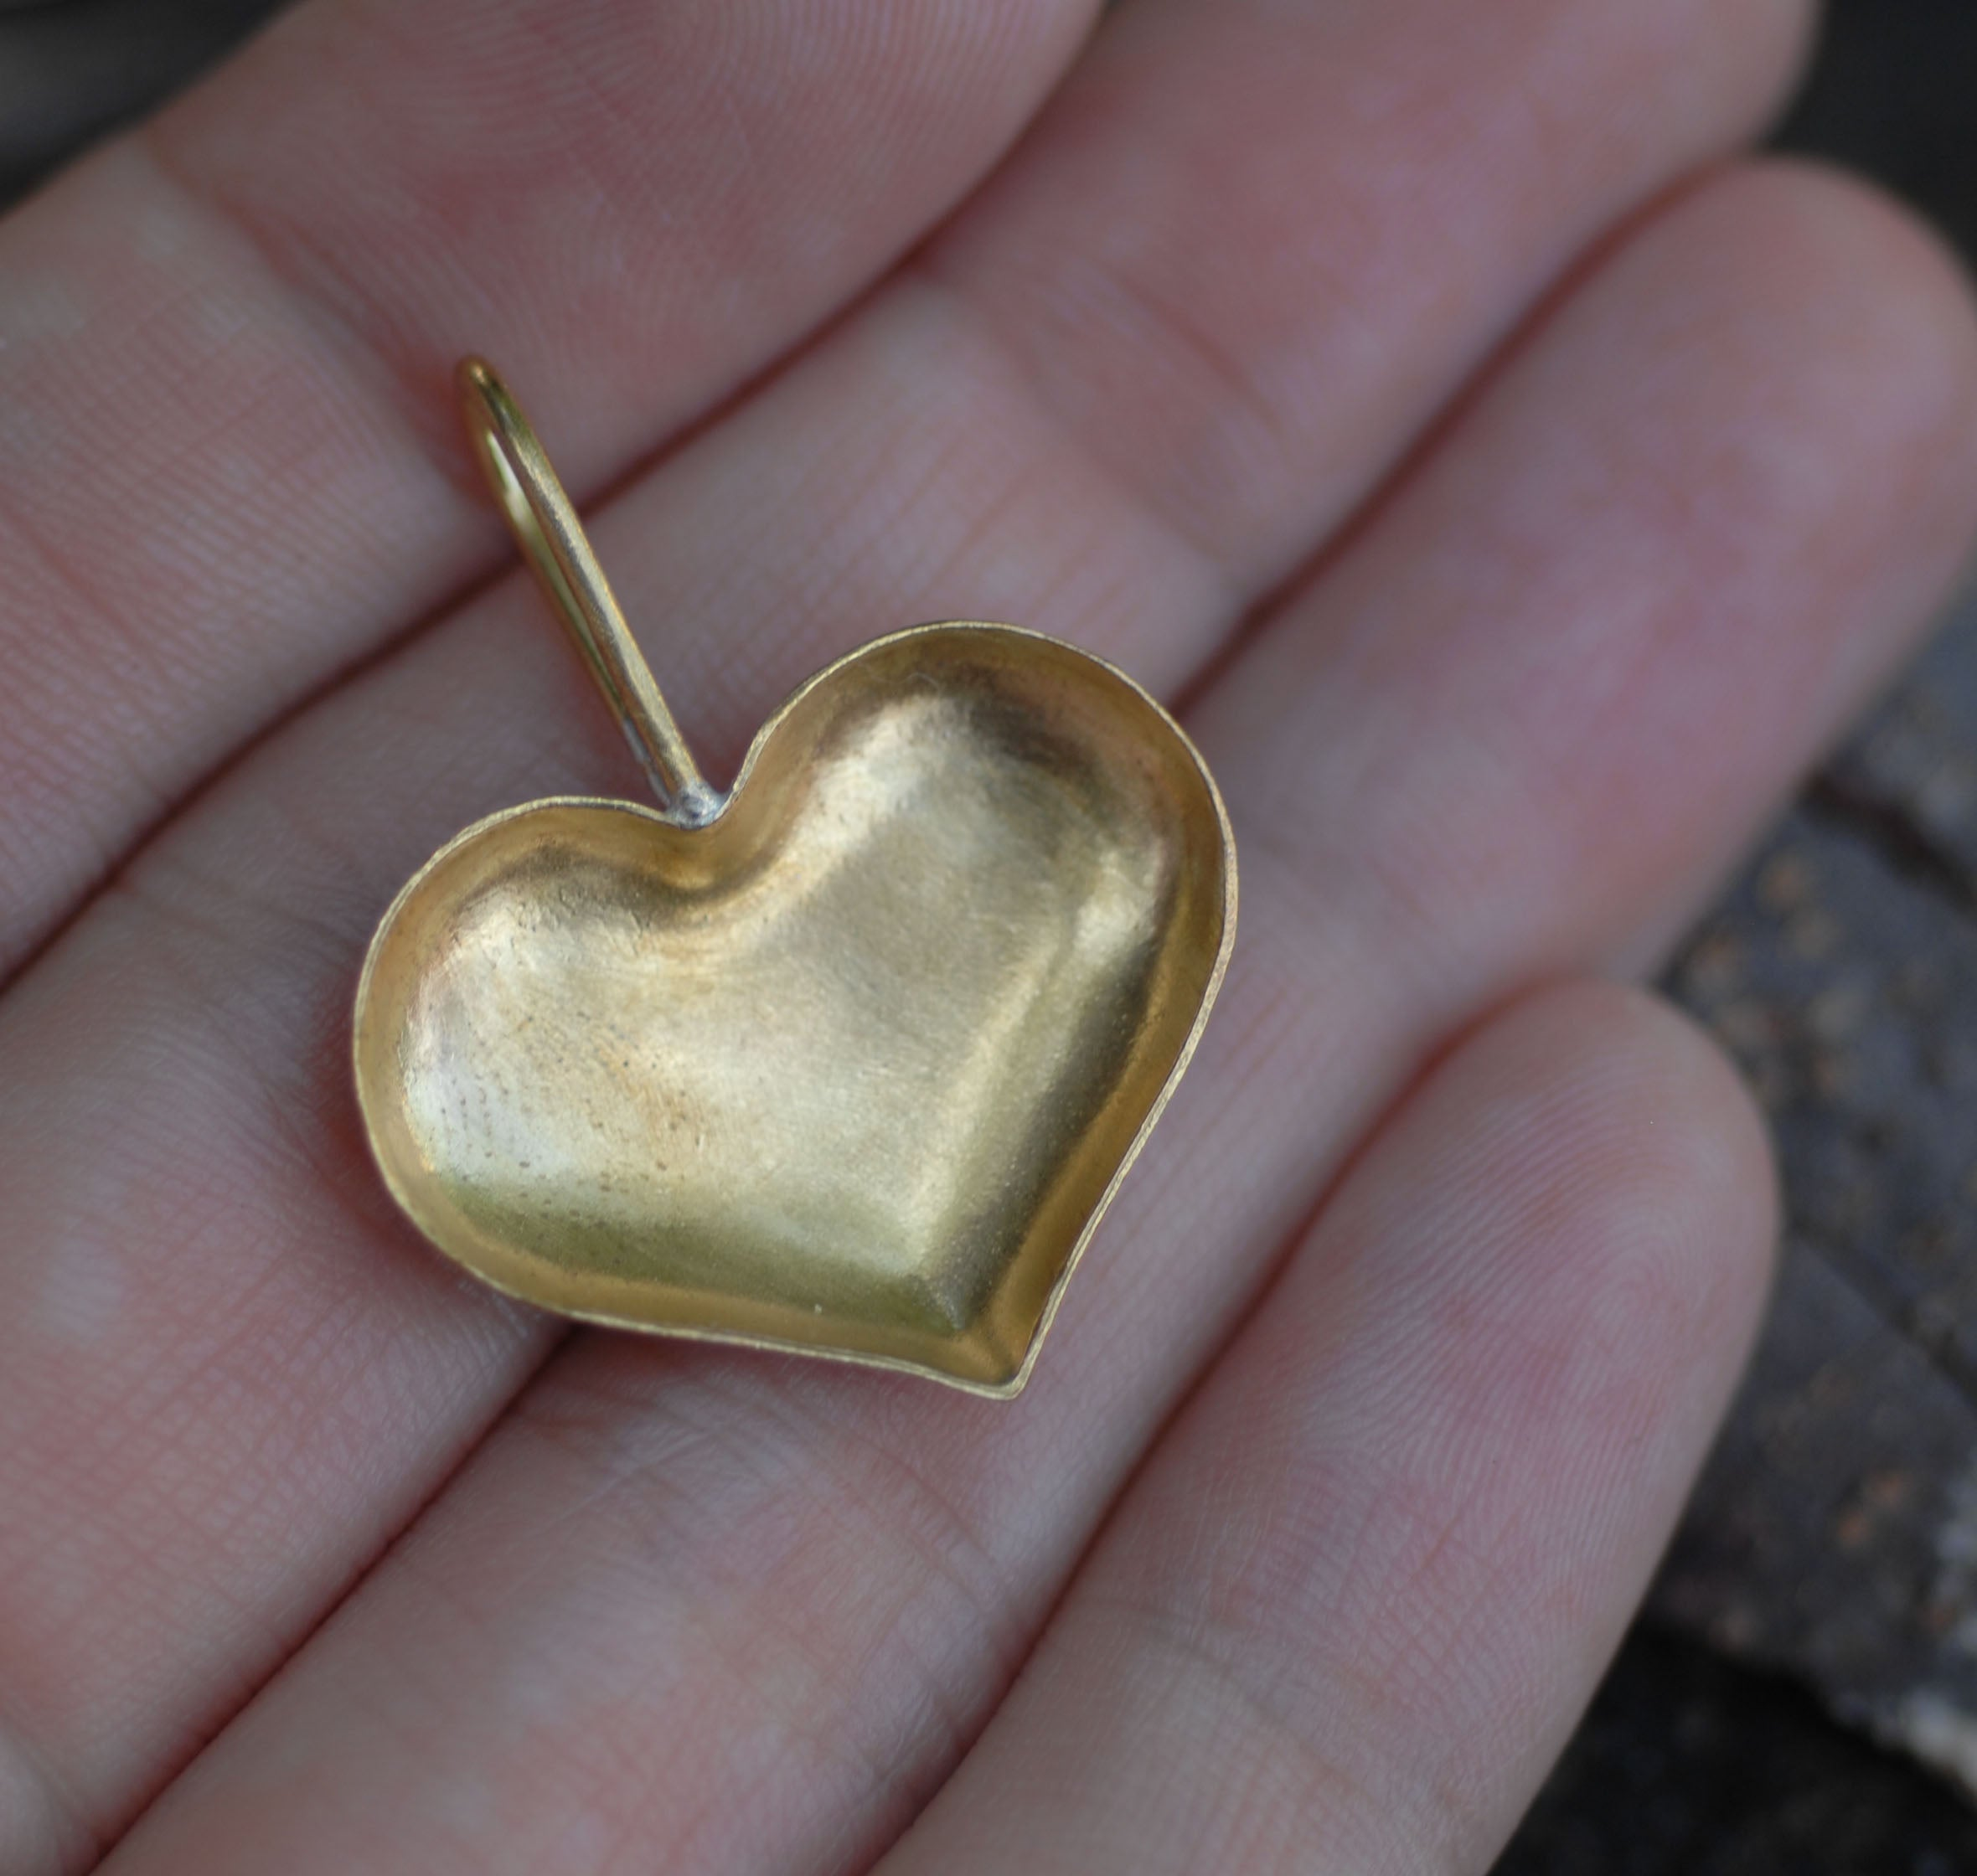 Bezel Cup Pendant for Resin Jewelry - Heart Pendant 31mm by 24mm